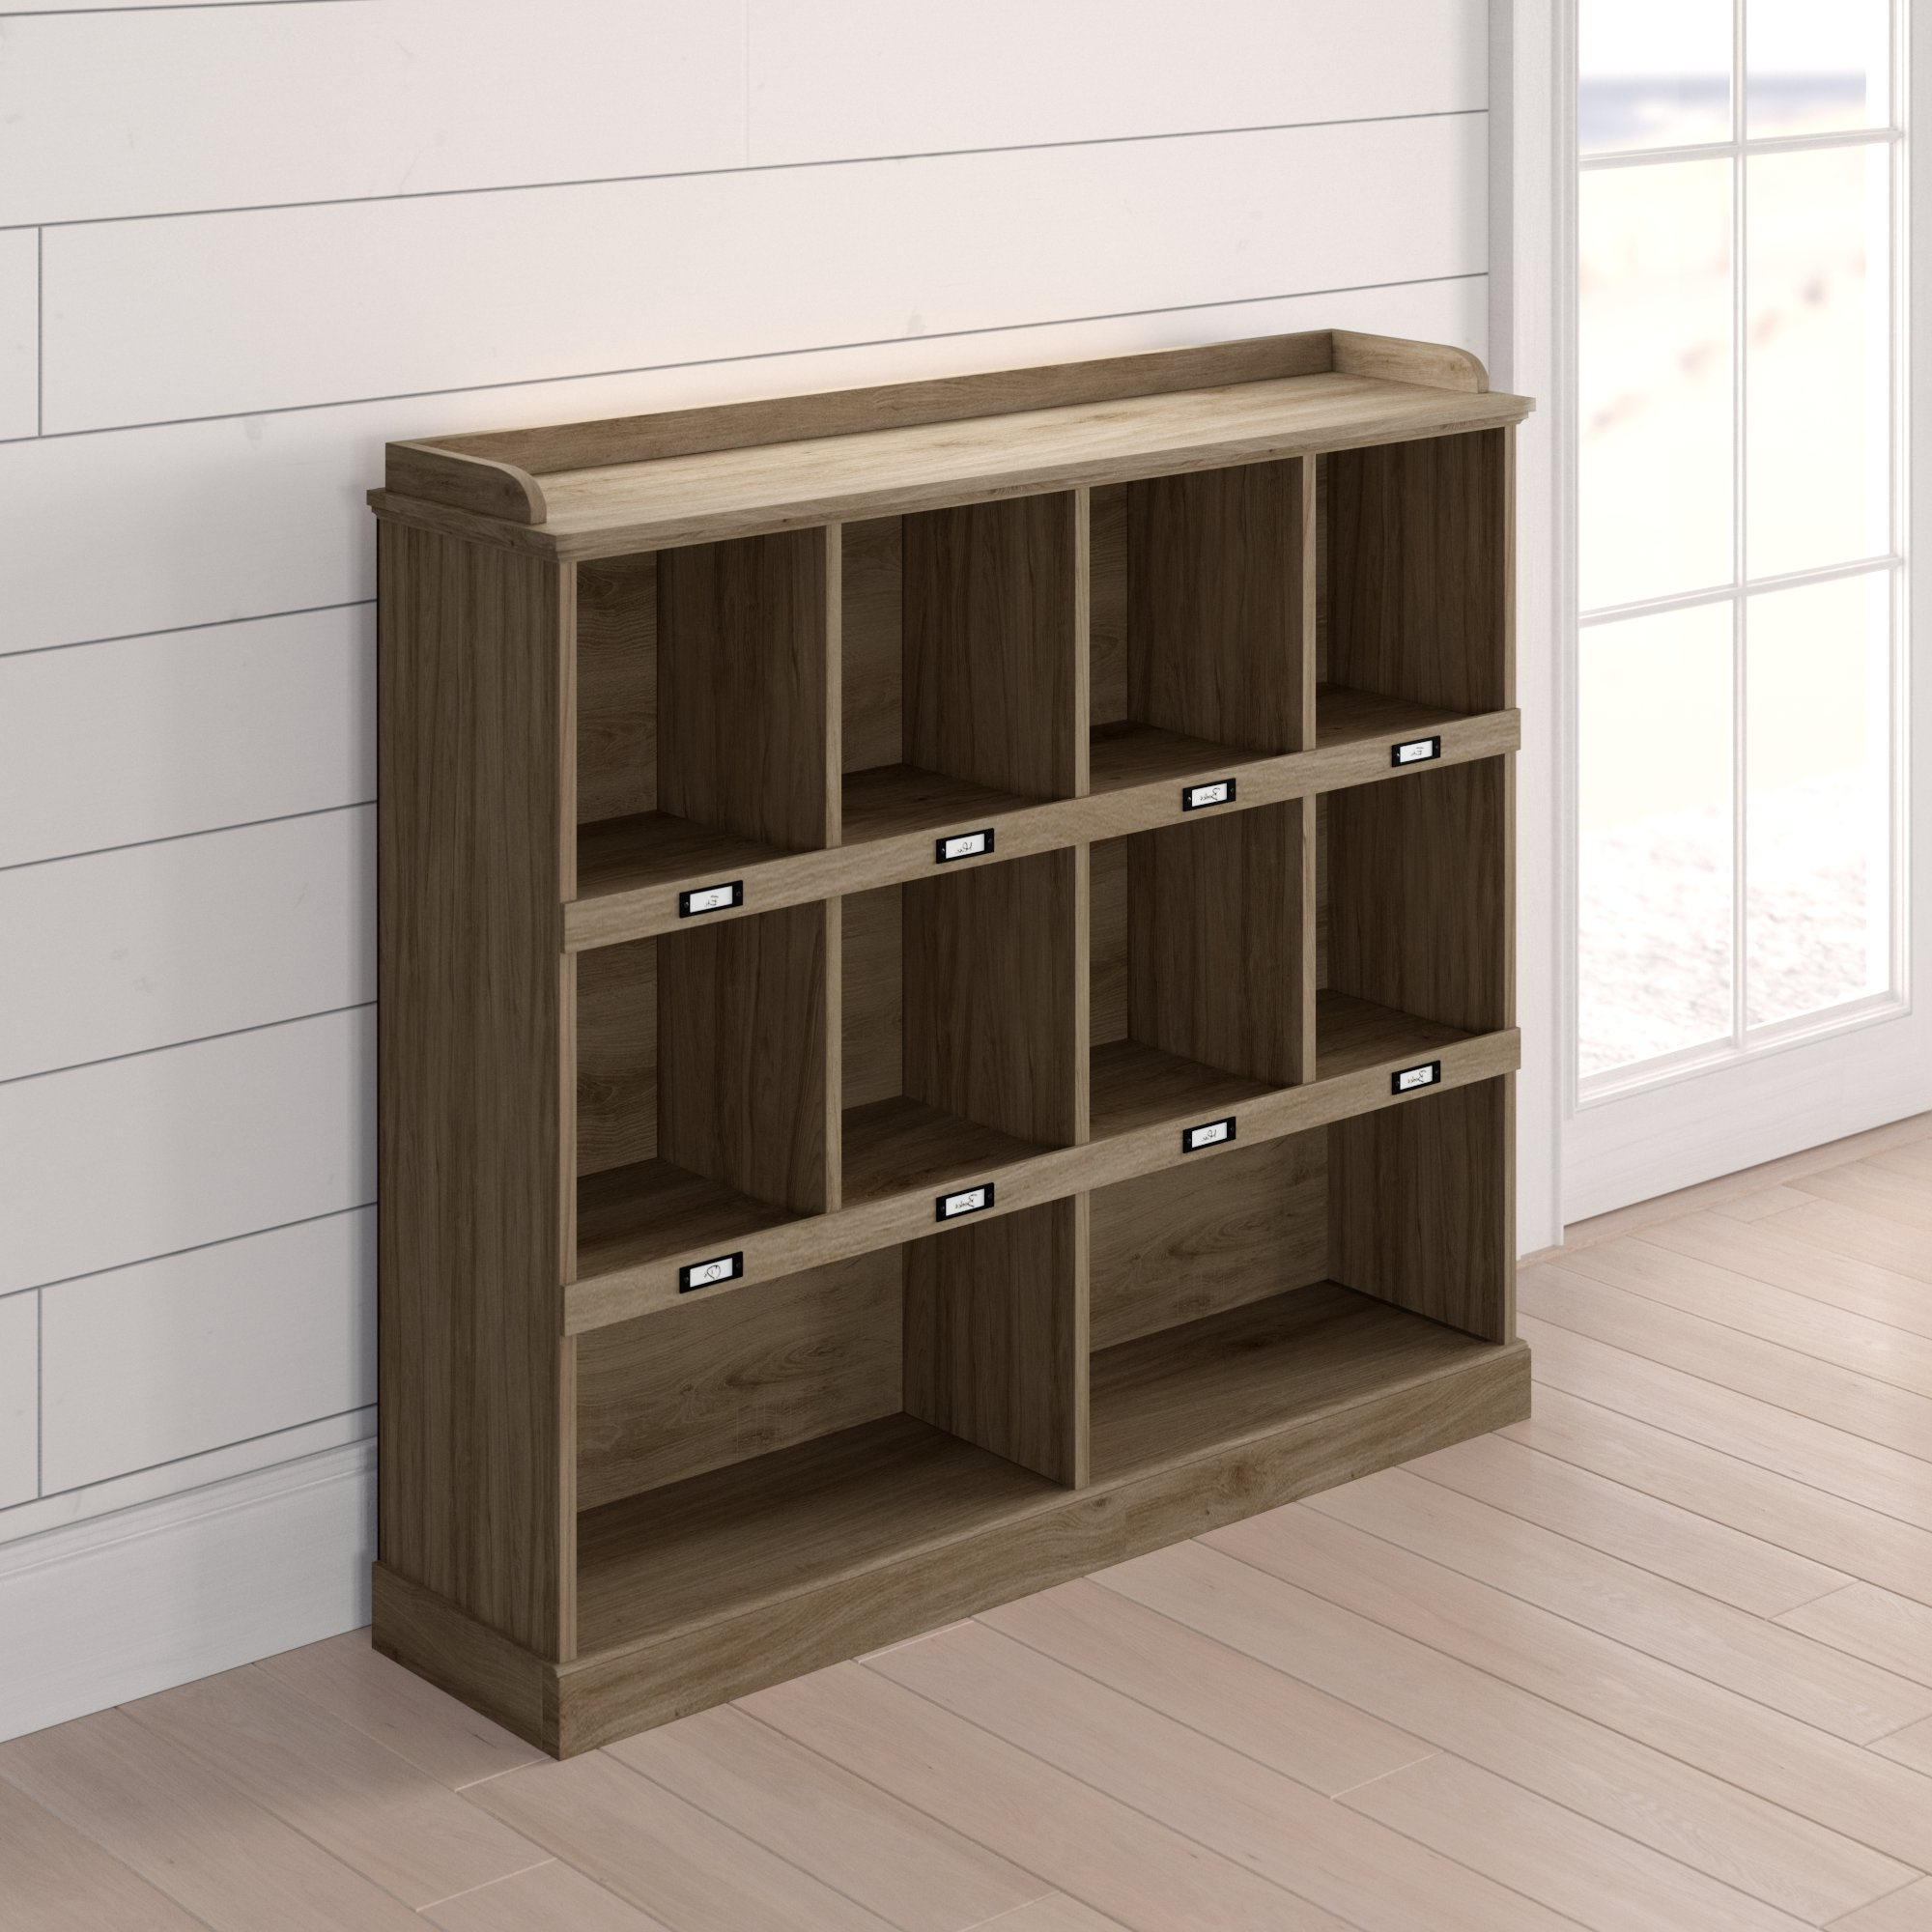 Bowerbank Standard Bookcase Within Recent Classroom Cubby Standard Bookcases (Gallery 14 of 20)